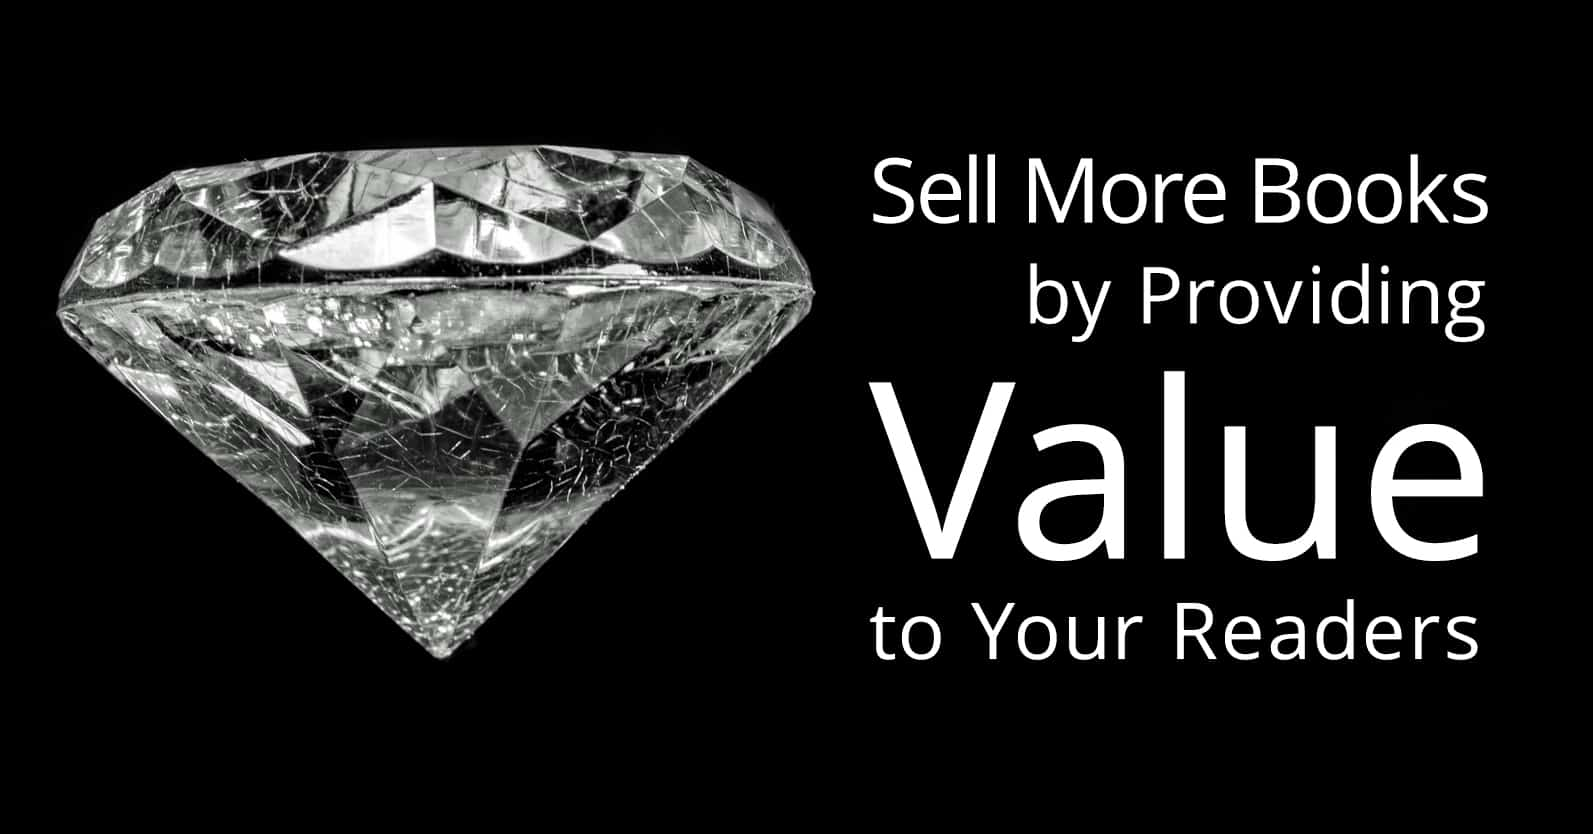 Sell More Books by Providing Value